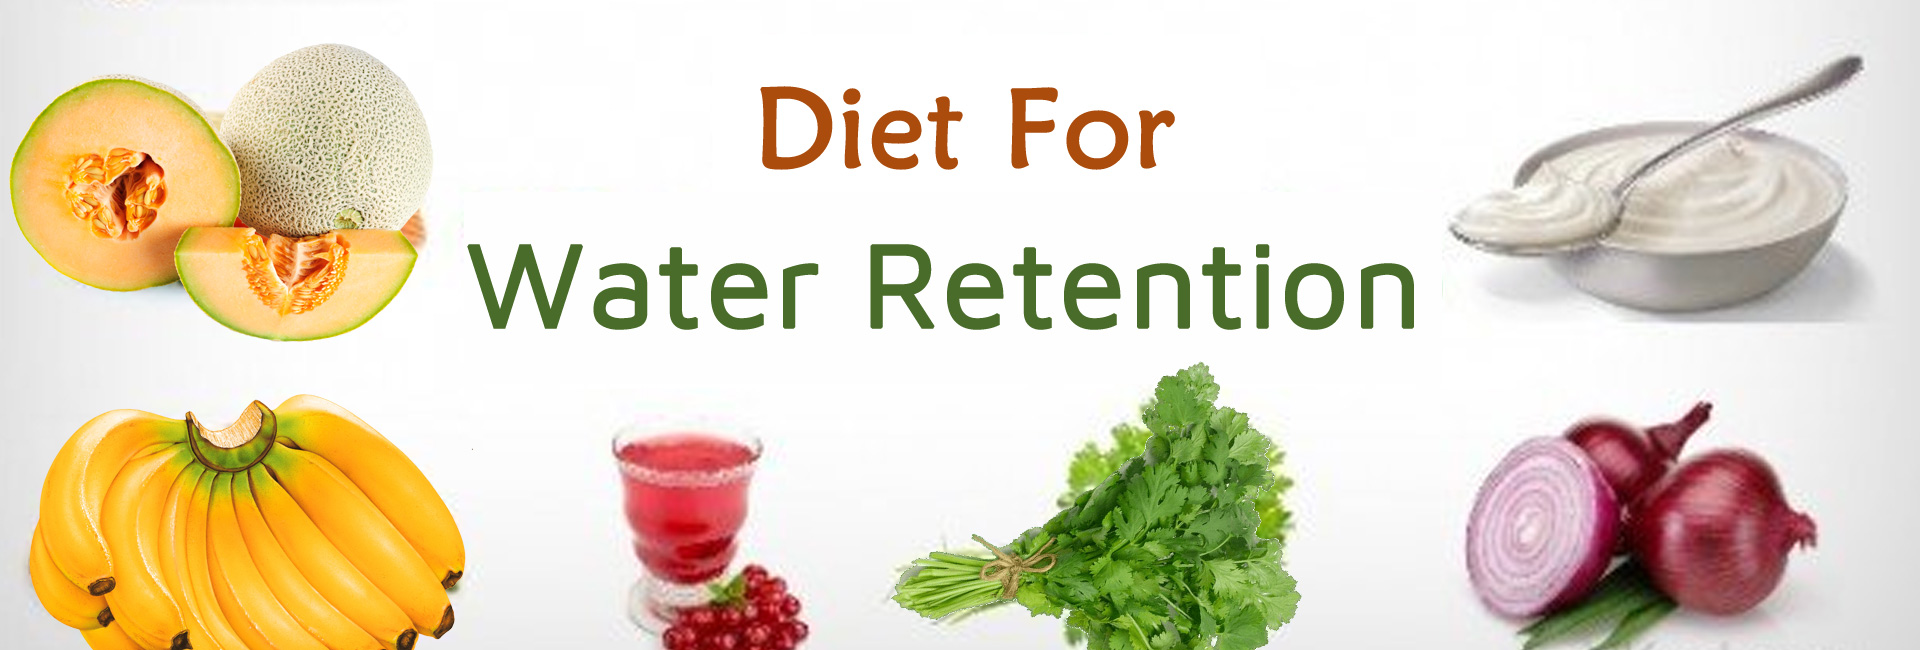 Diet For Water Retention In Mont-laurier